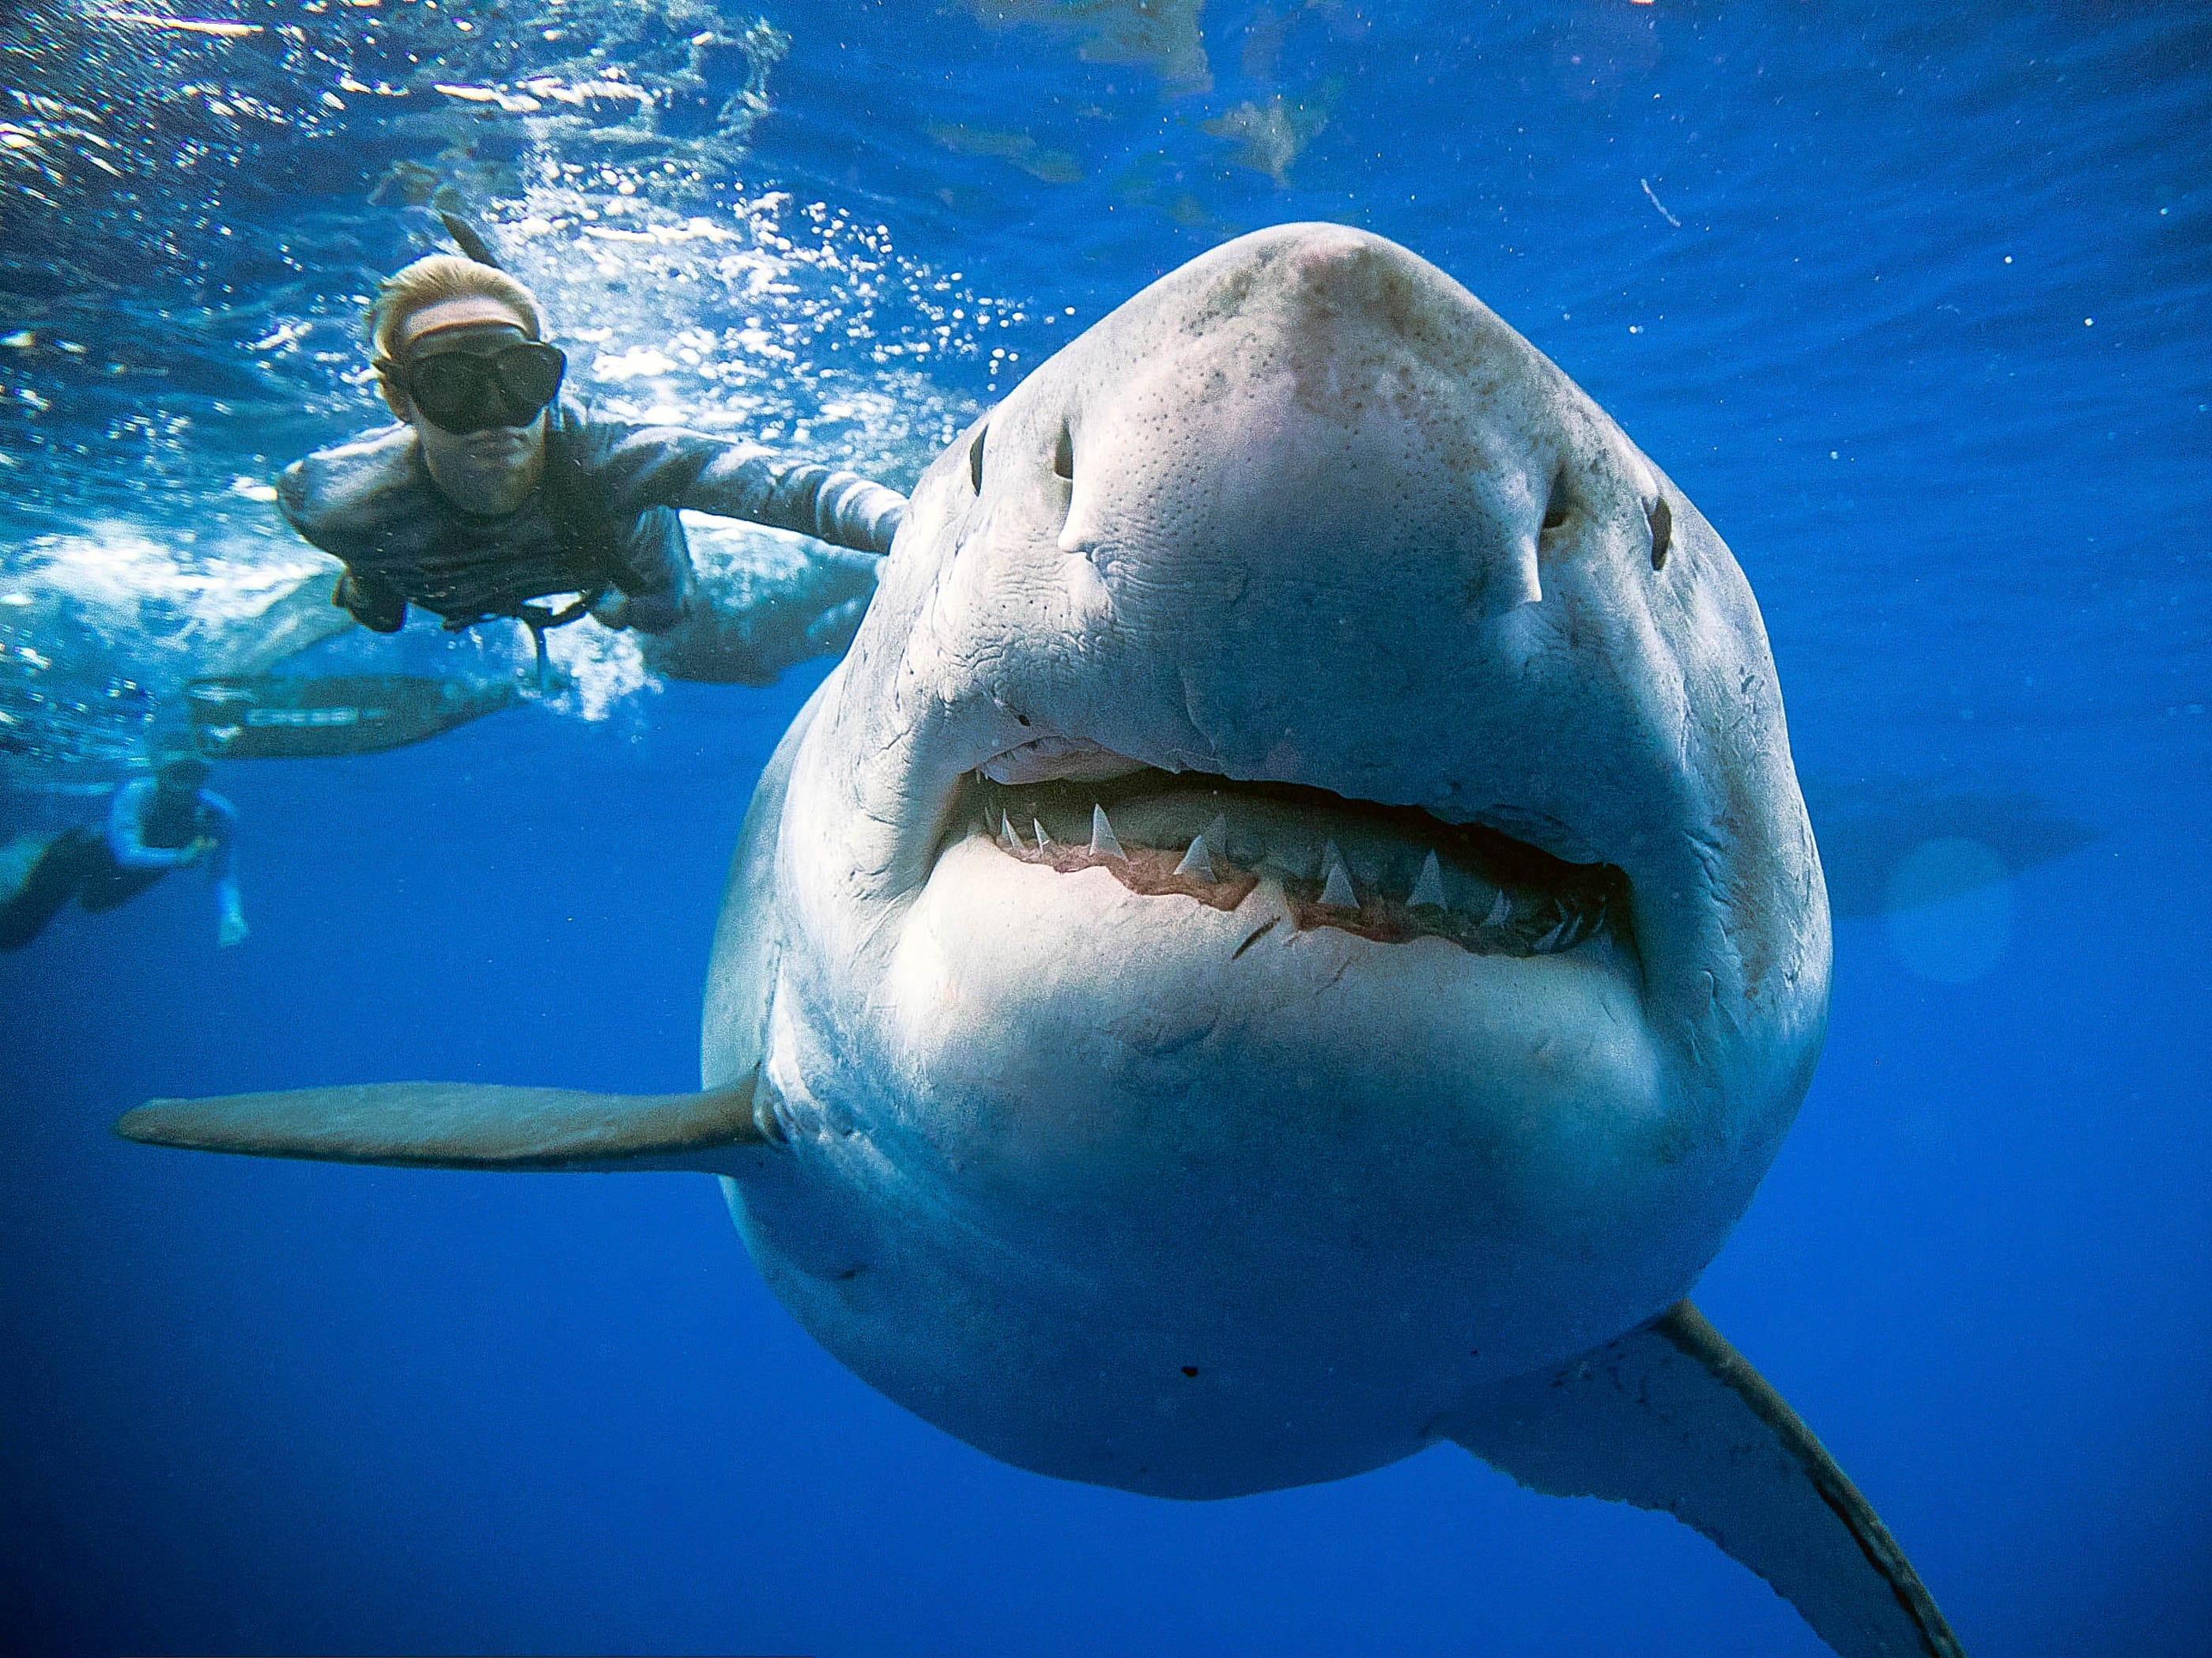 In this Jan. 15, 2019 photo provided by Juan Oliphant, Ocean Ramsey, a shark researcher and advocate, swims with a large great white shark off the shore of Oahu.  Ramsey told The Associated Press on Thursday, Jan. 17 that images of her swimming next to a huge great white shark prove that these top predators should be protected, not feared. (Juan Oliphant via AP)